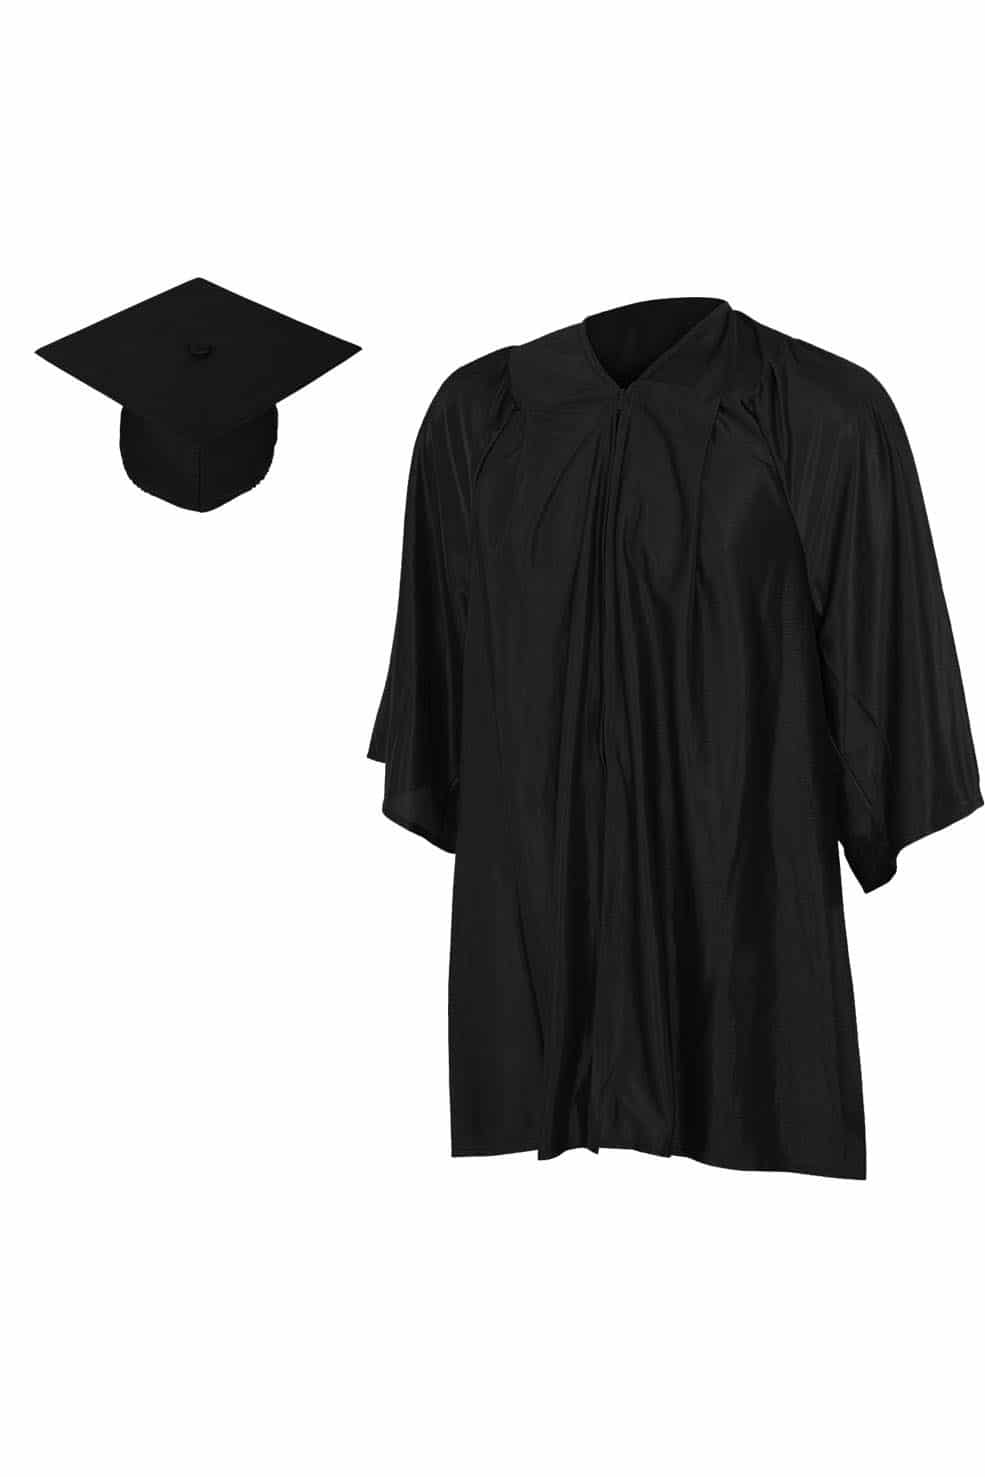 Matte Kinder Cap and Gown